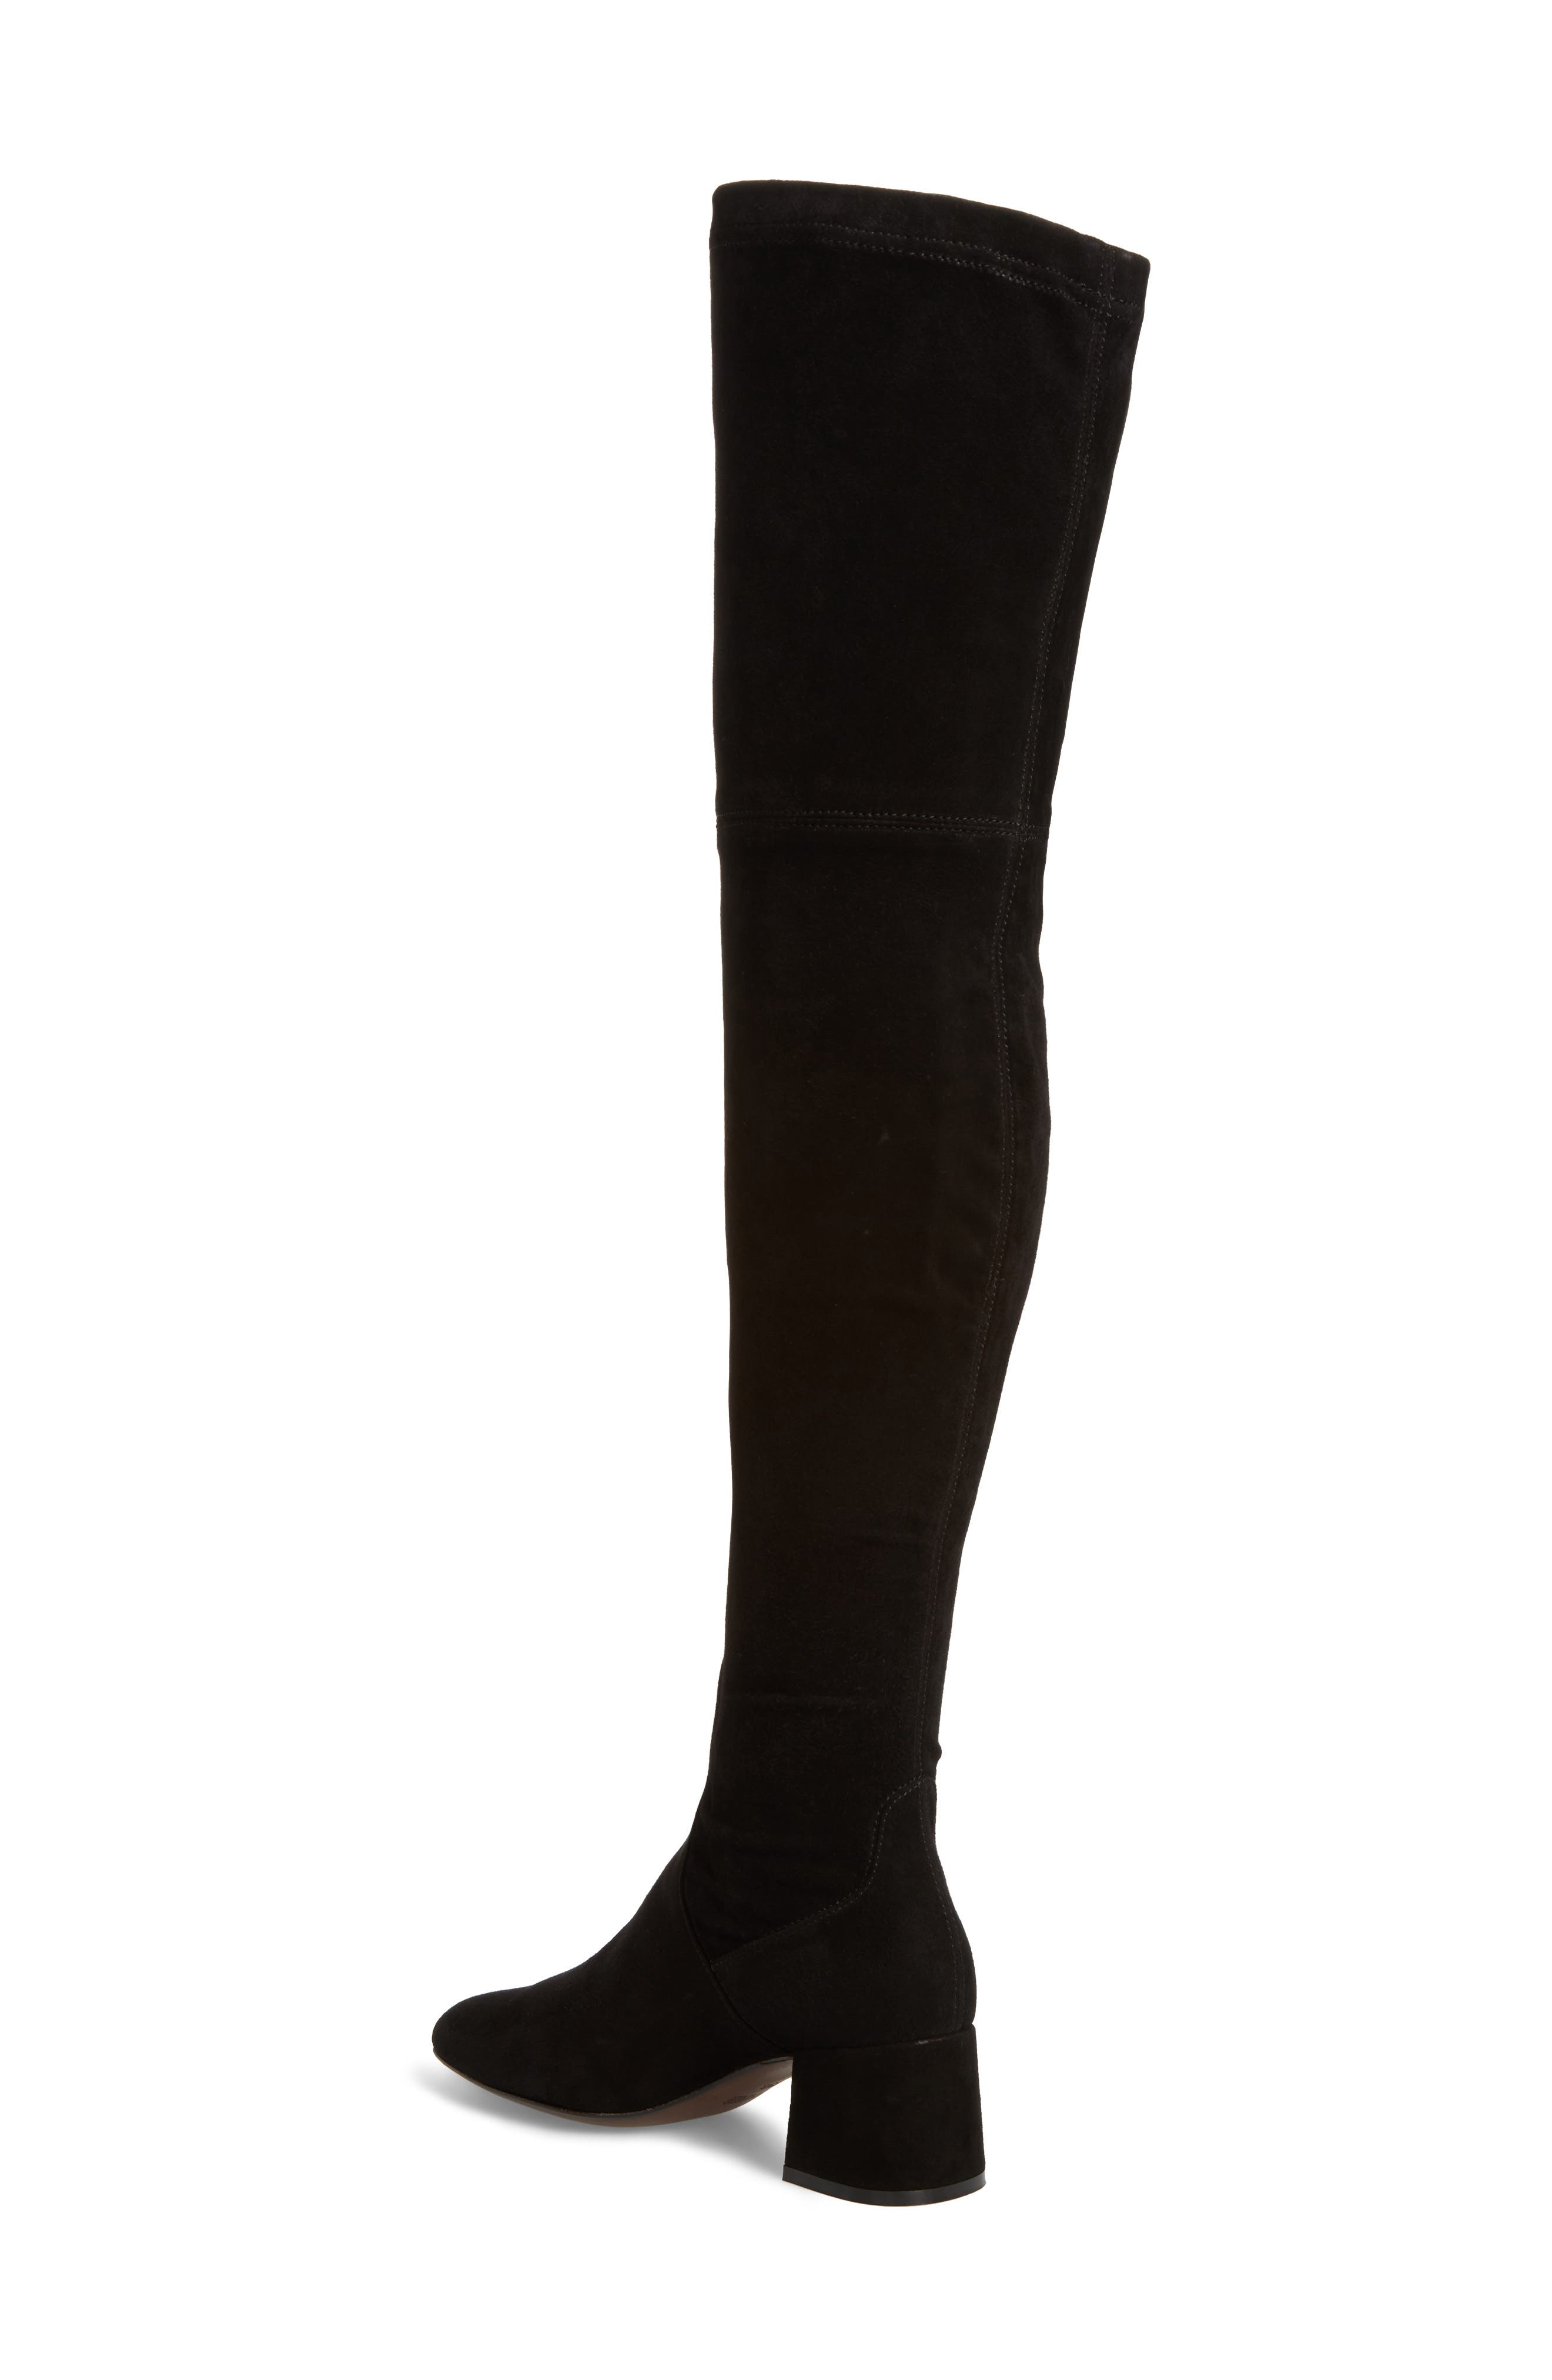 Over the Knee Boot,                             Alternate thumbnail 2, color,                             002